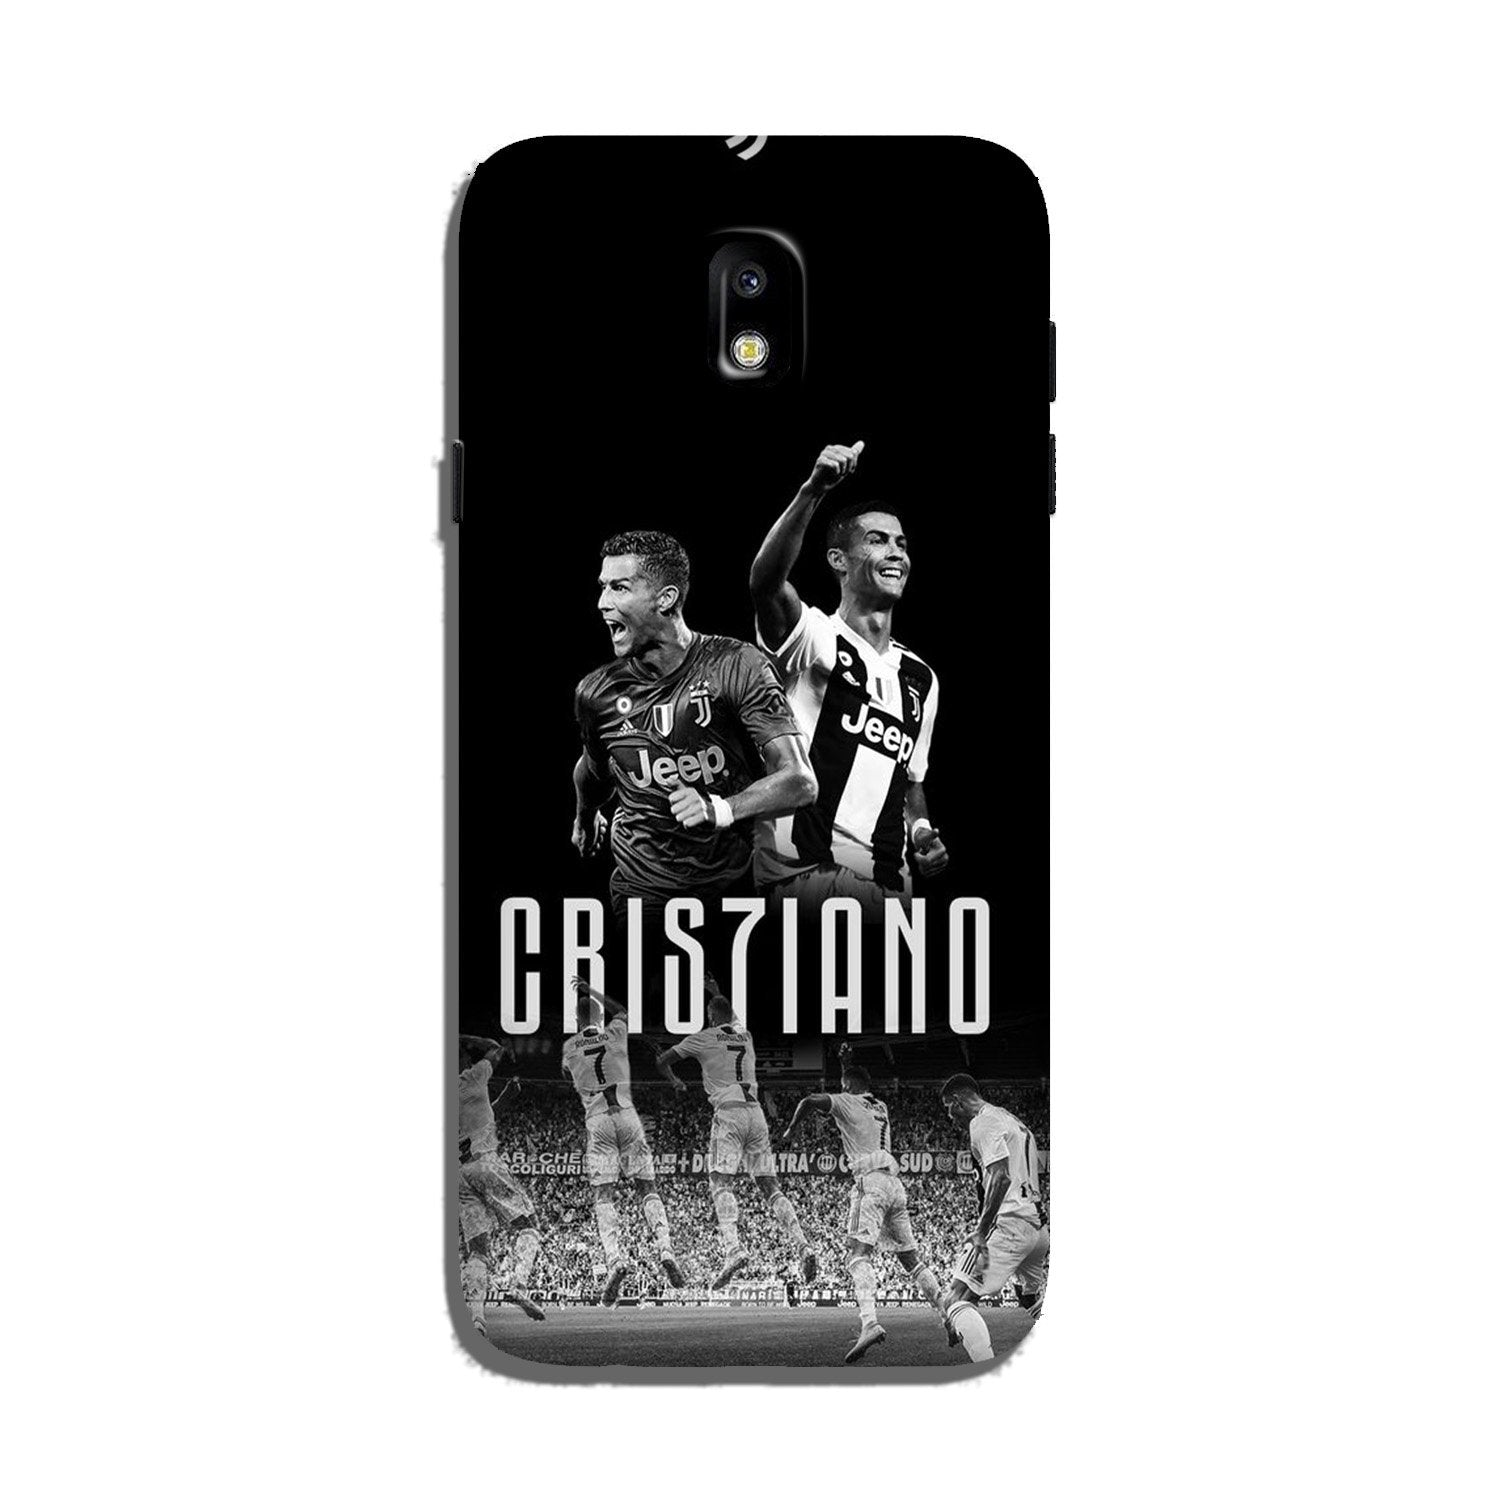 Cristiano Case for Galaxy J7 Pro  (Design - 165)